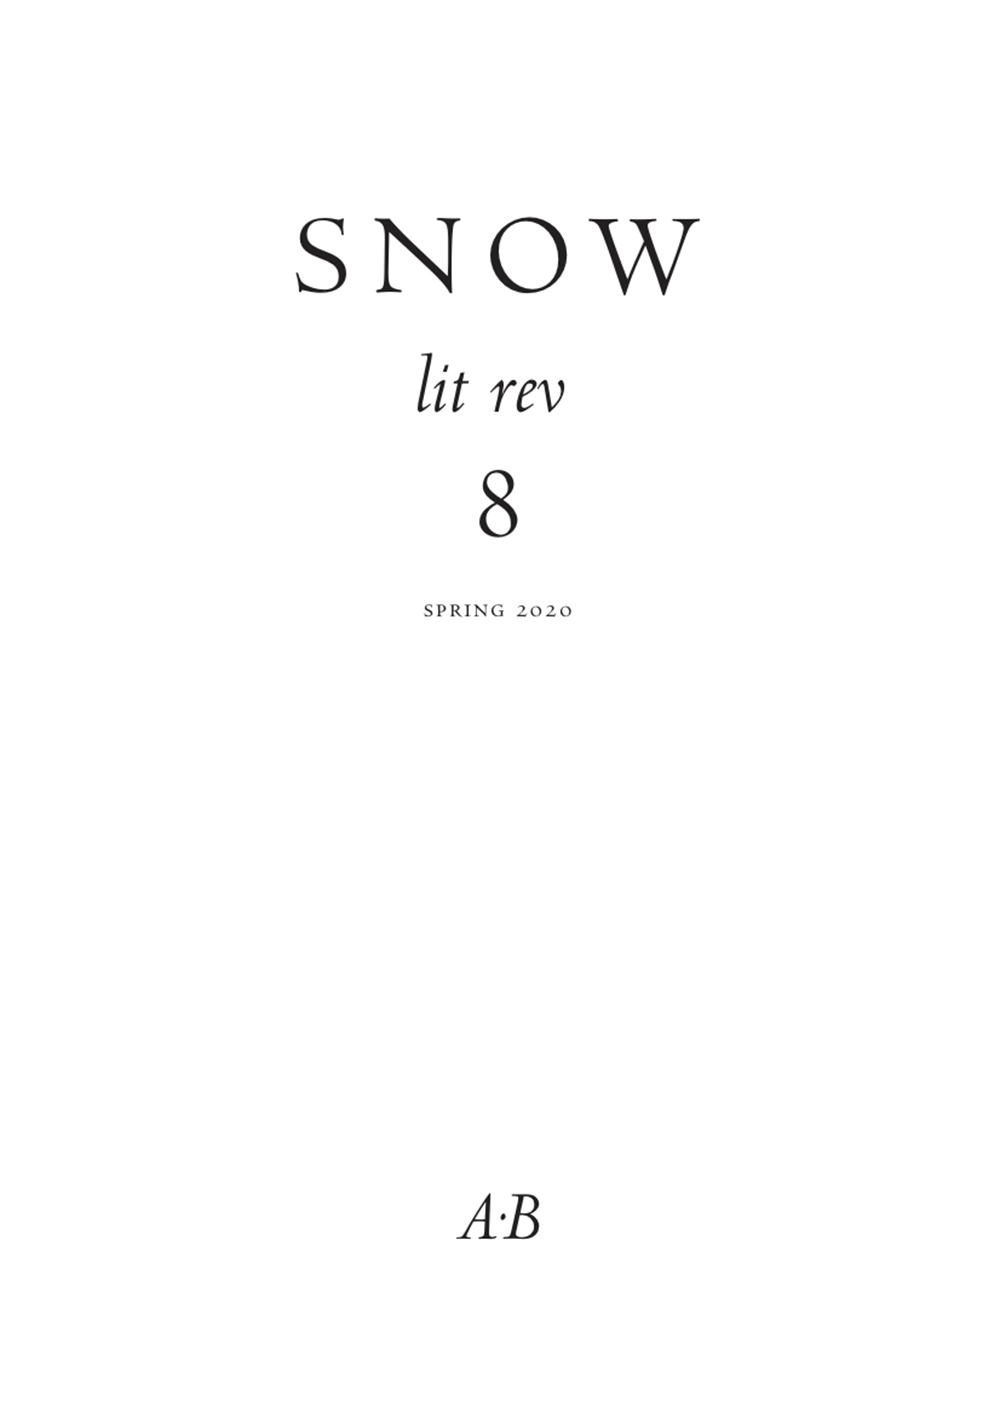 Snow lit rev, no. 8